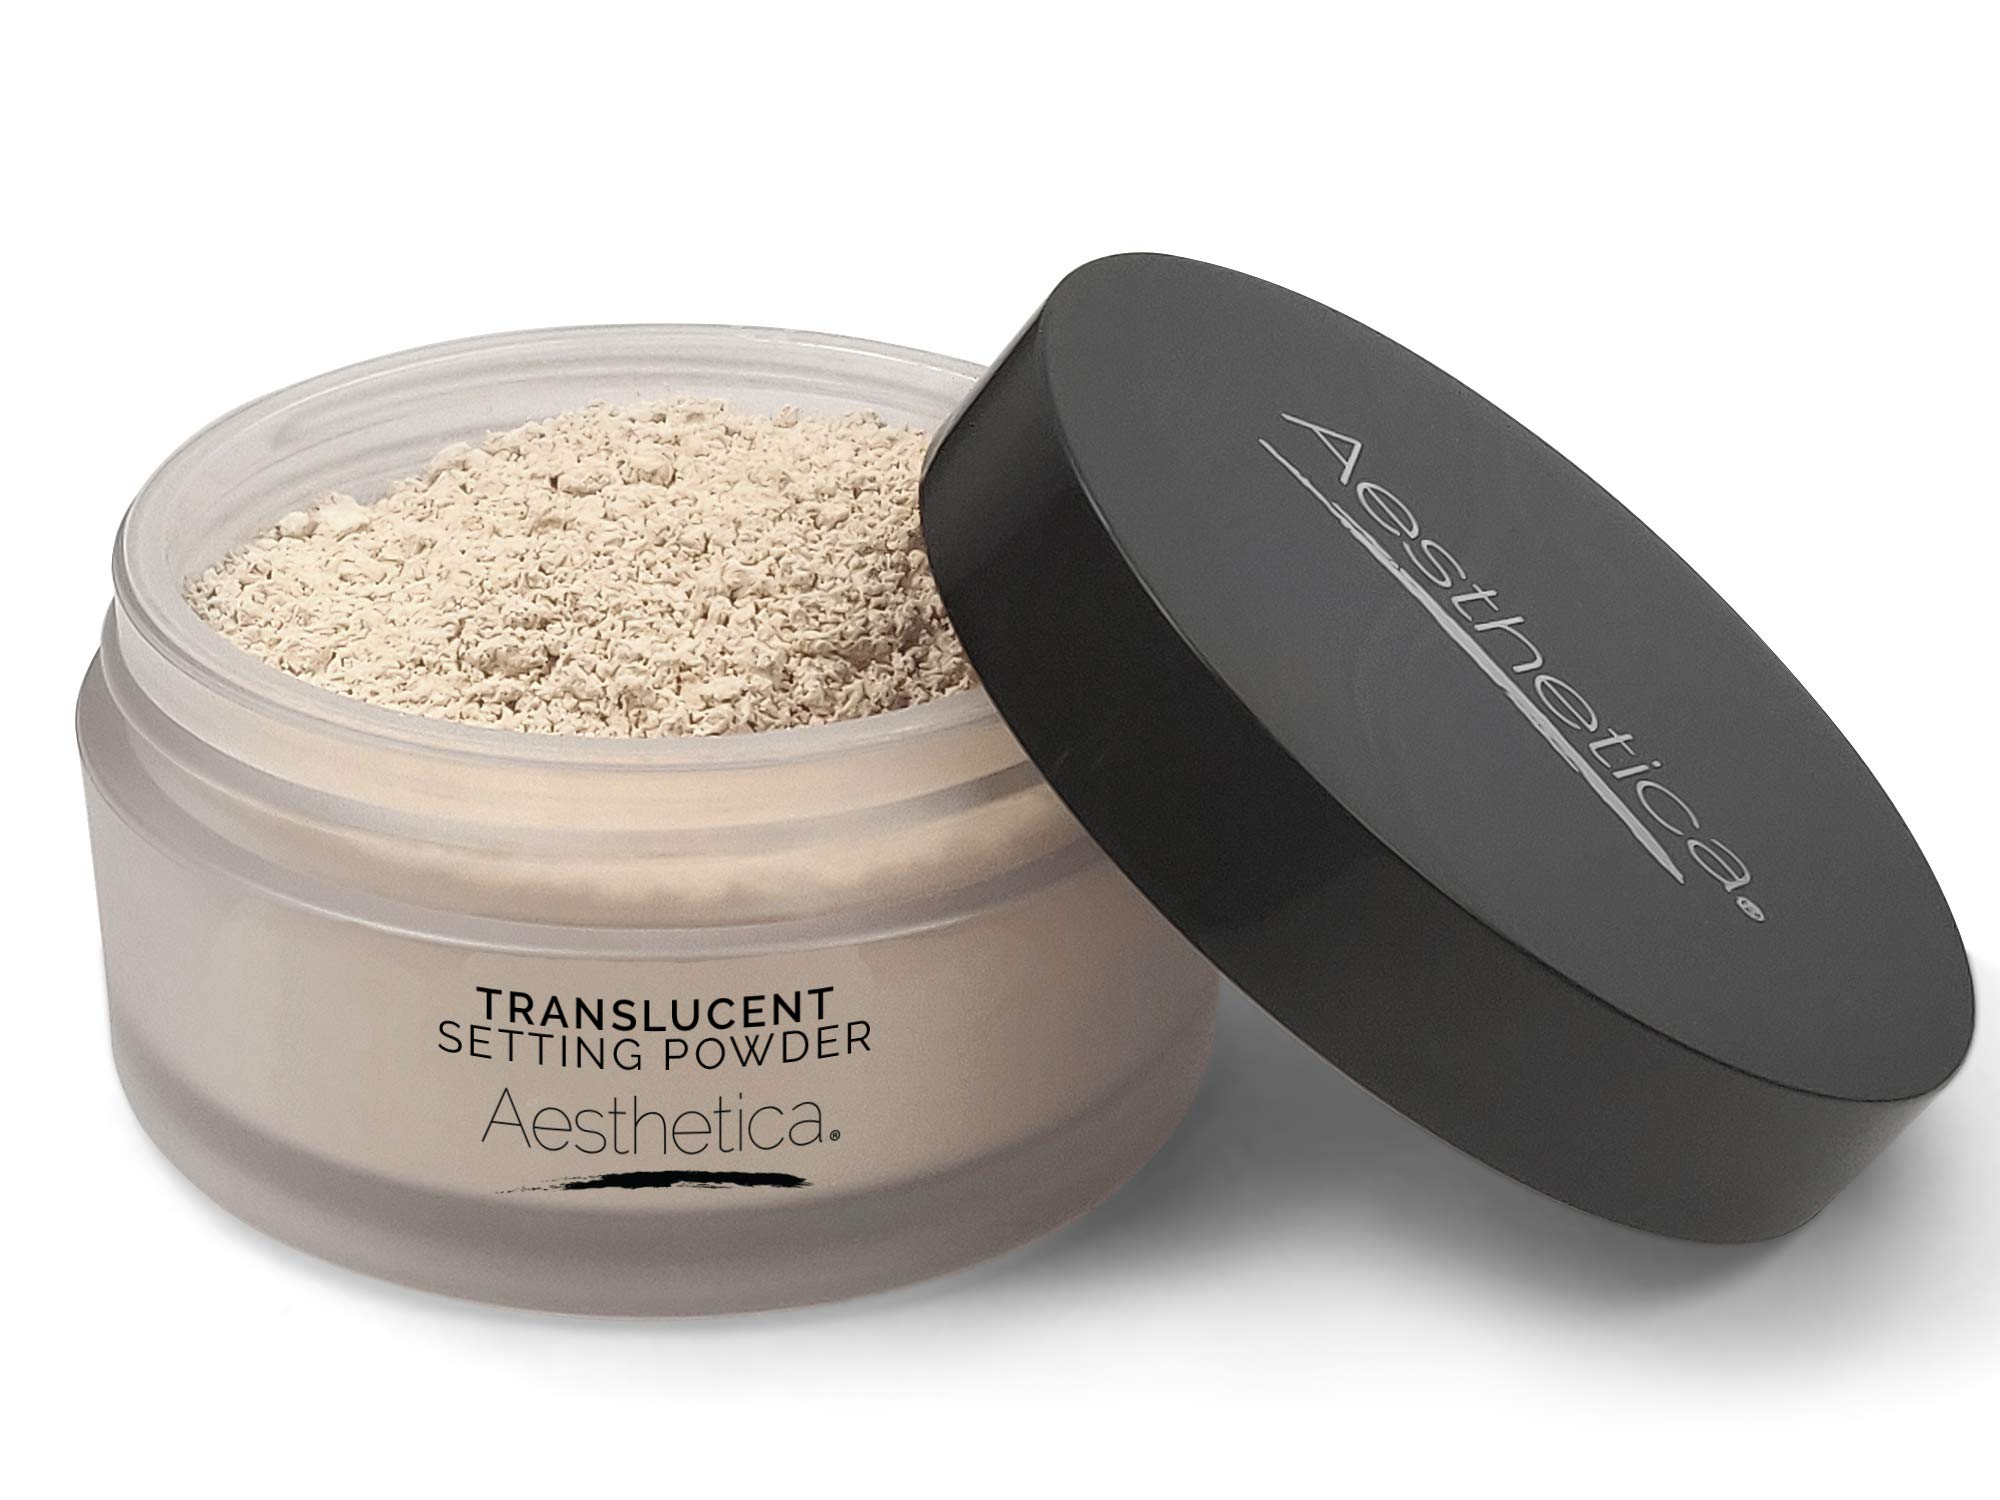 Aesthetica Translucent Setting Powder - Matte Finishing Makeup Loose Setting Powder - Flash Friendly Translucent Powder Foundation - Loose Face Powder Includes Velour Puff by Aesthetica